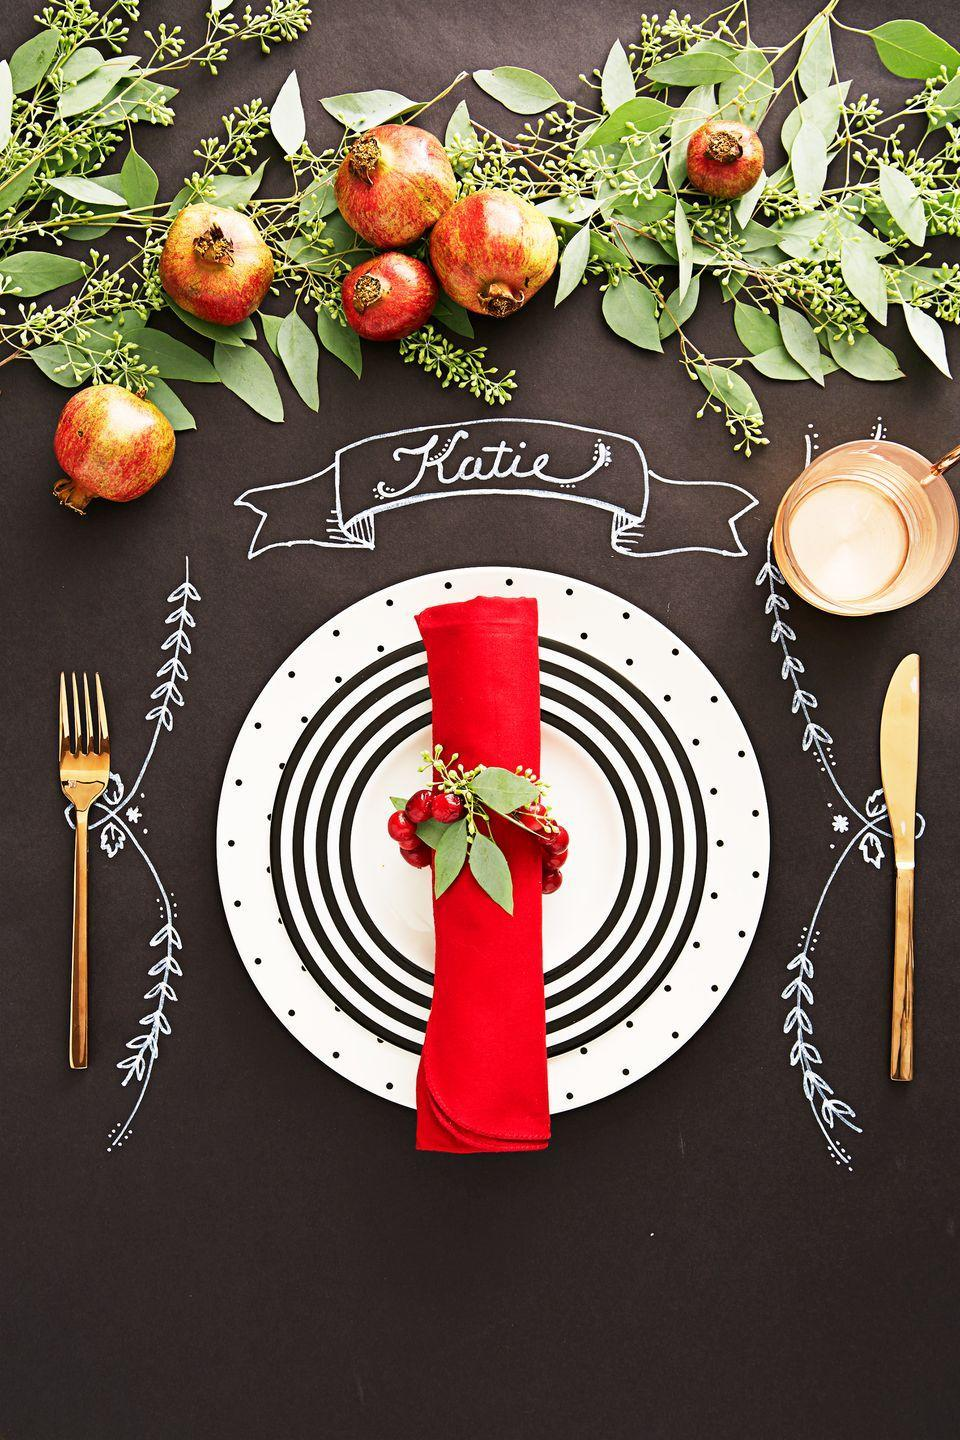 <p>Ditch a fussy tablecloth and use black butcher paper instead. This way, you can decorate it however you want. You can channel your inner artist with a paint pen and draw on decorative details and/or customize place cards, and hey, it makes cleaning up after a holiday dinner much easier.</p>